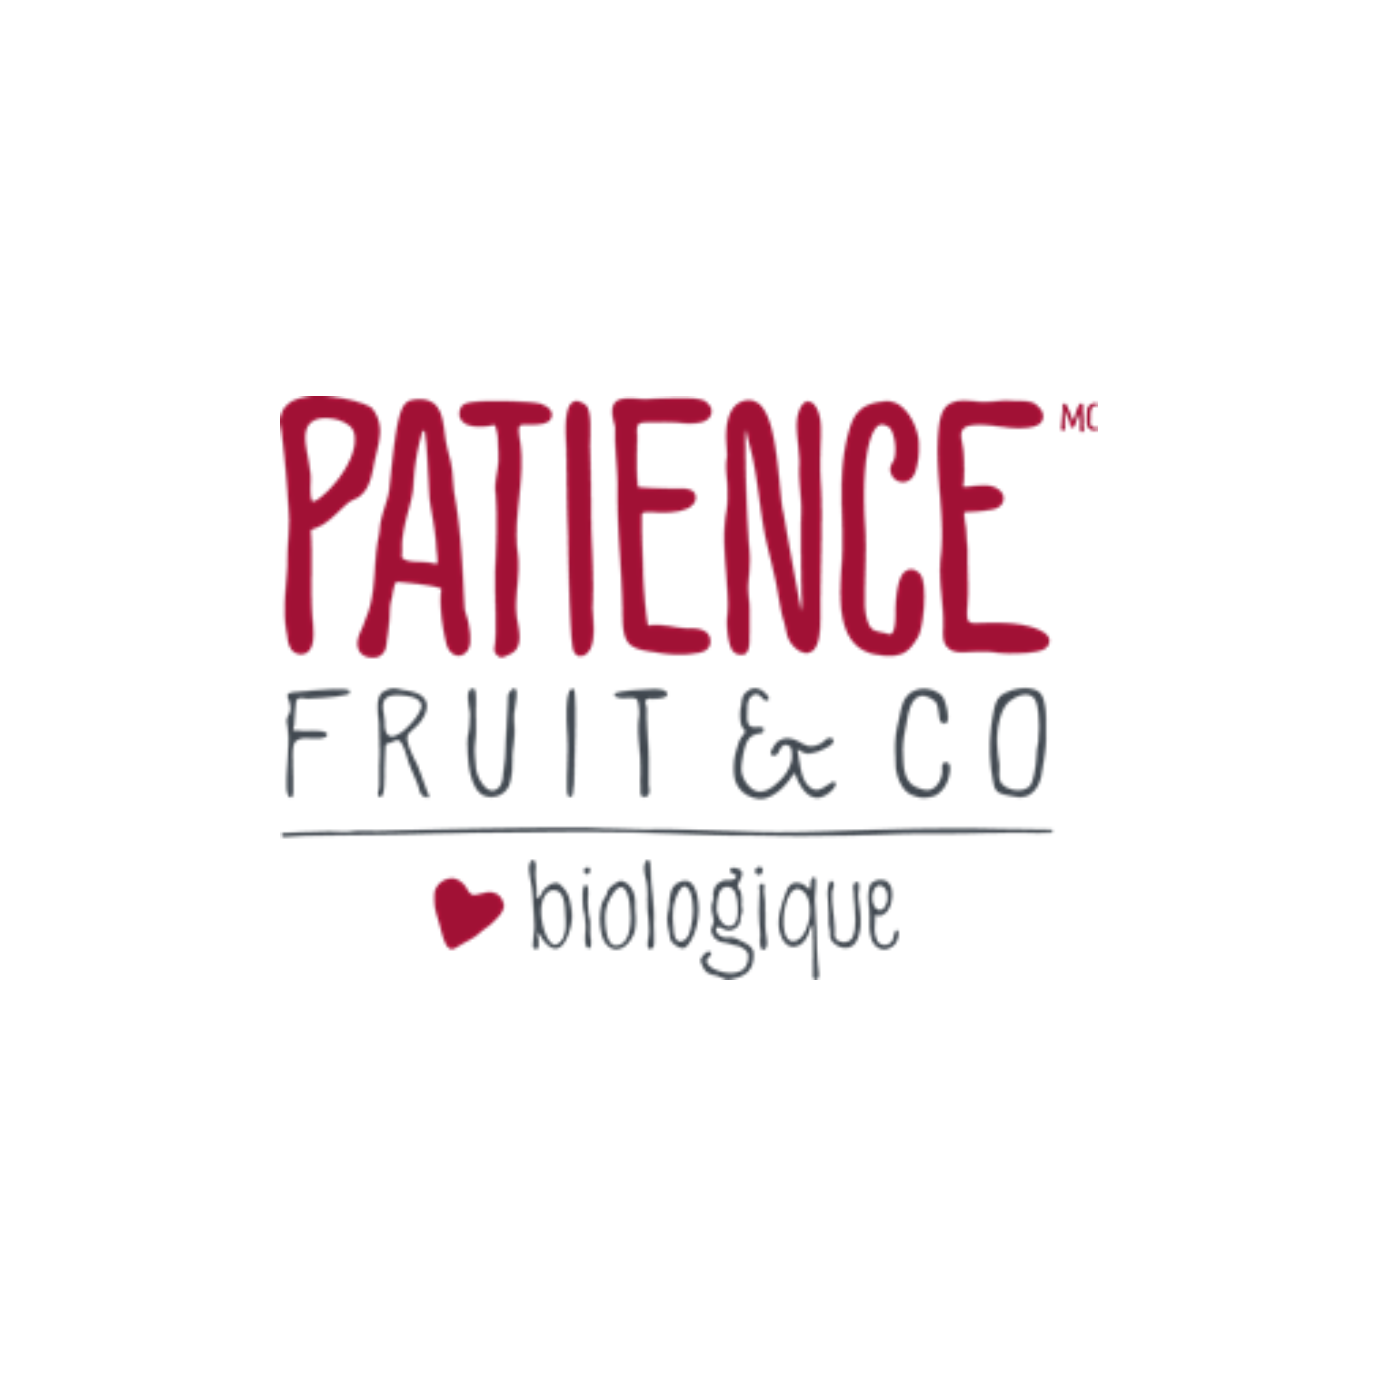 Patience Fruit Co logo - Fruit d'Or - Certified Paleo by the Paleo Foundation